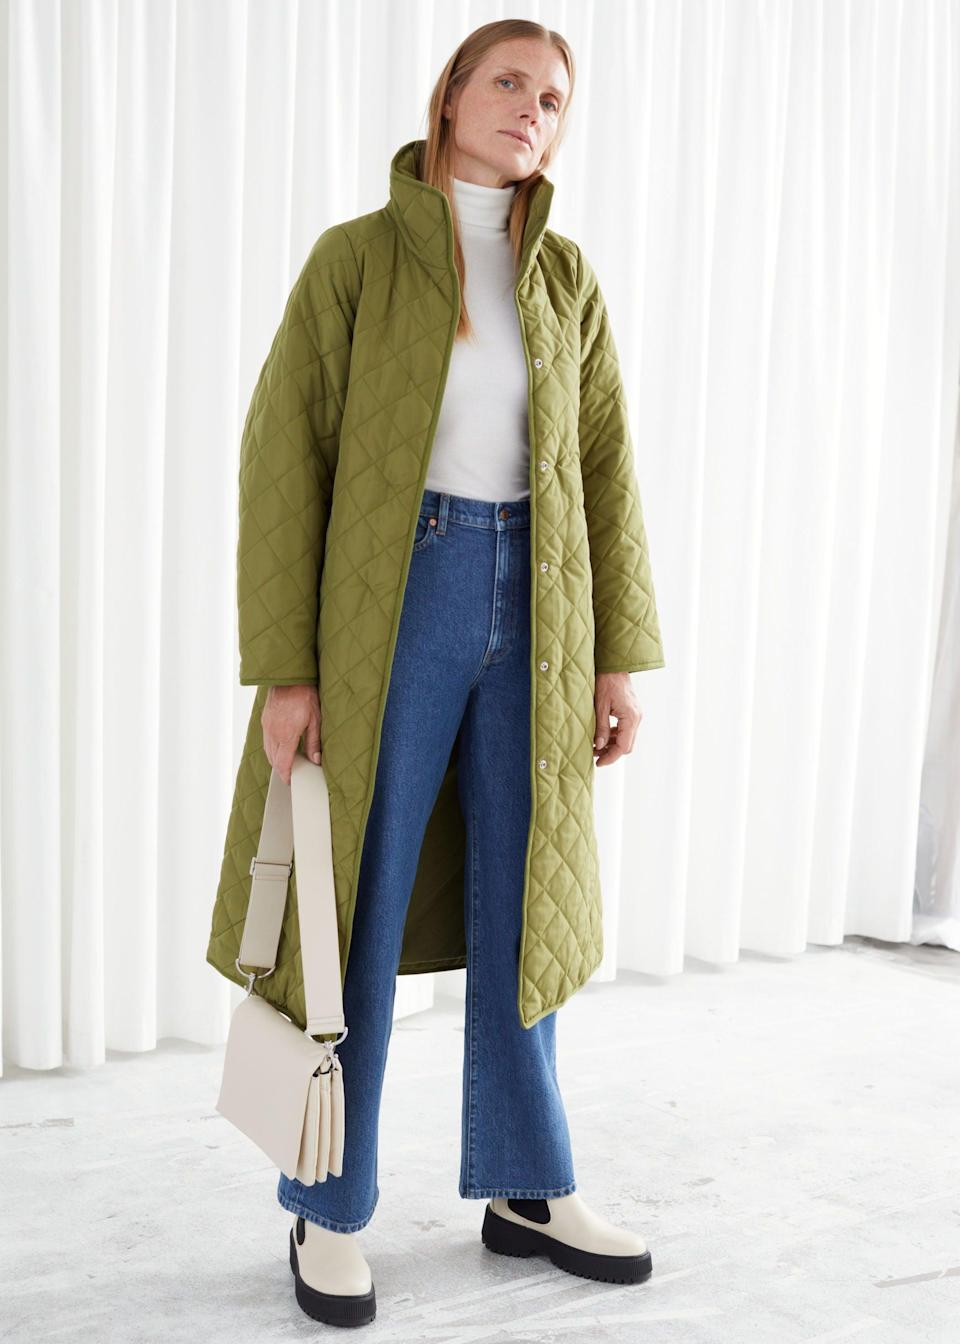 """<br><br><strong>& Other Stories</strong> Belted Quilted Coat, $, available at <a href=""""https://www.stories.com/en_gbp/clothing/jackets-coats/product.belted-quilted-coat-green.0910907002.html"""" rel=""""nofollow noopener"""" target=""""_blank"""" data-ylk=""""slk:& Other Stories"""" class=""""link rapid-noclick-resp"""">& Other Stories</a>"""